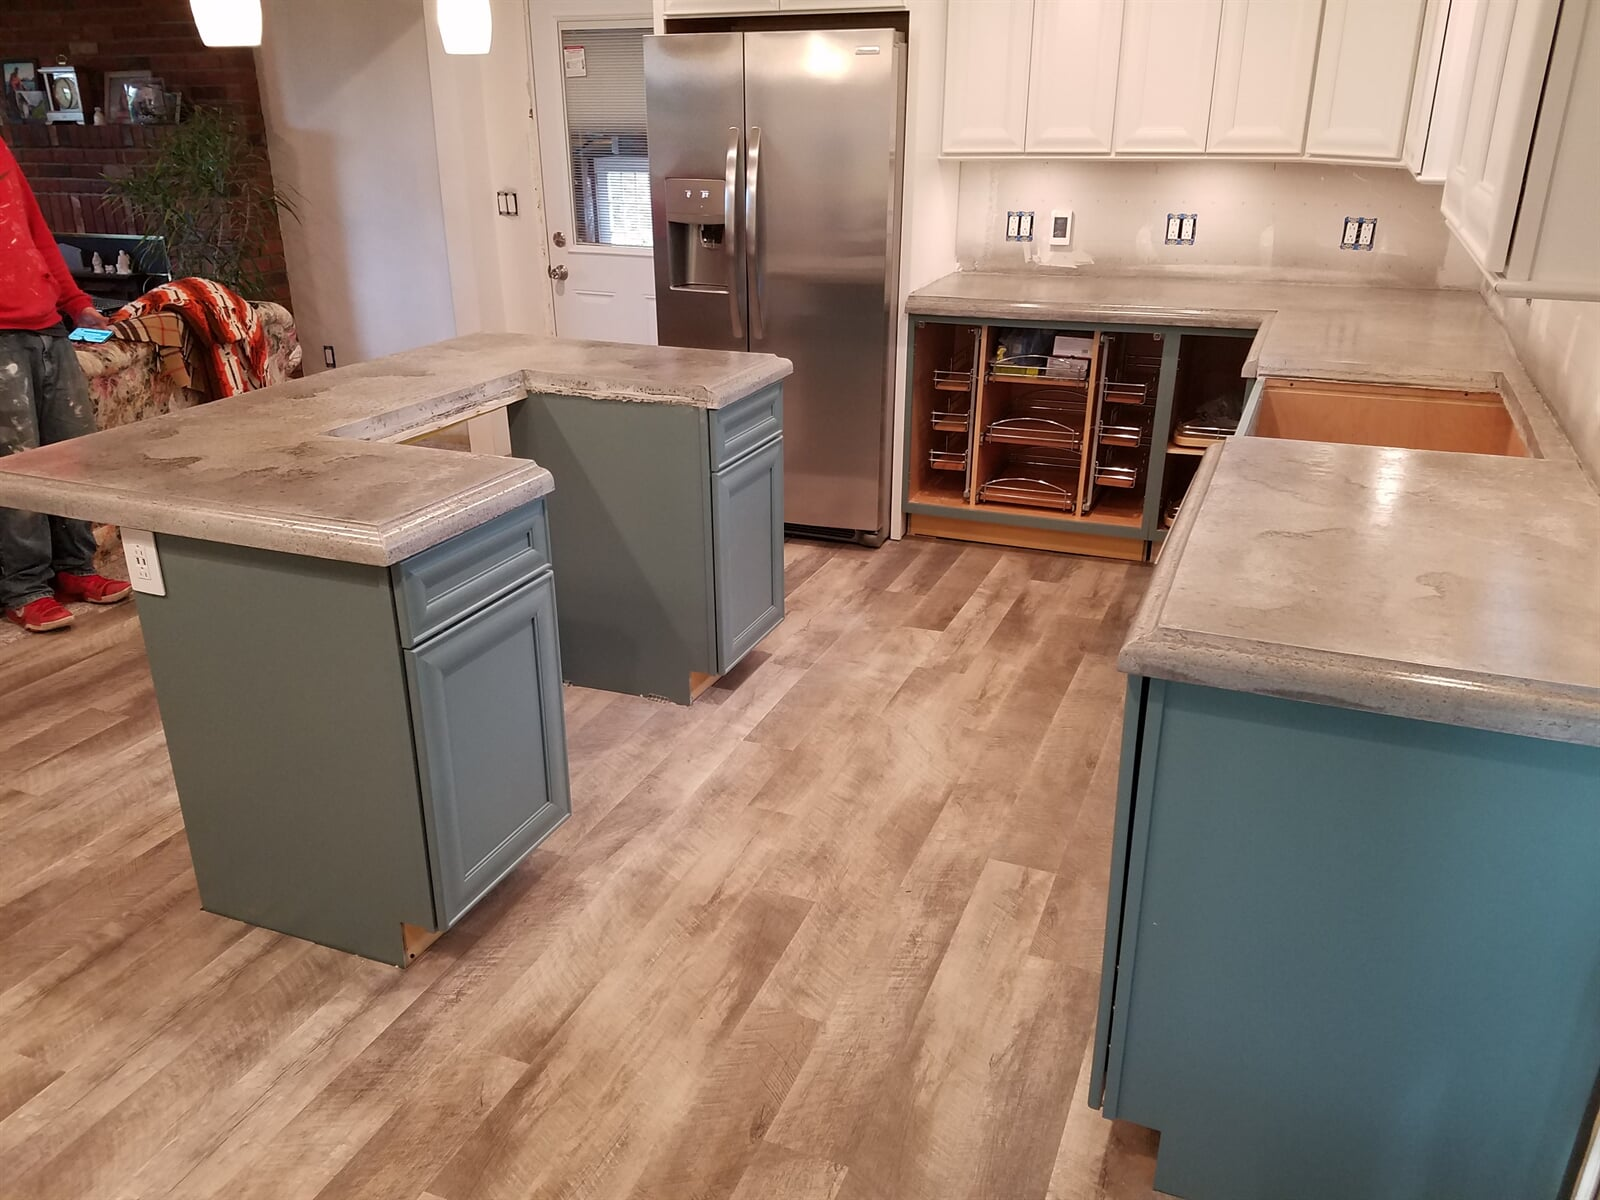 Kitchen Remodel featuring Concrete Countertops